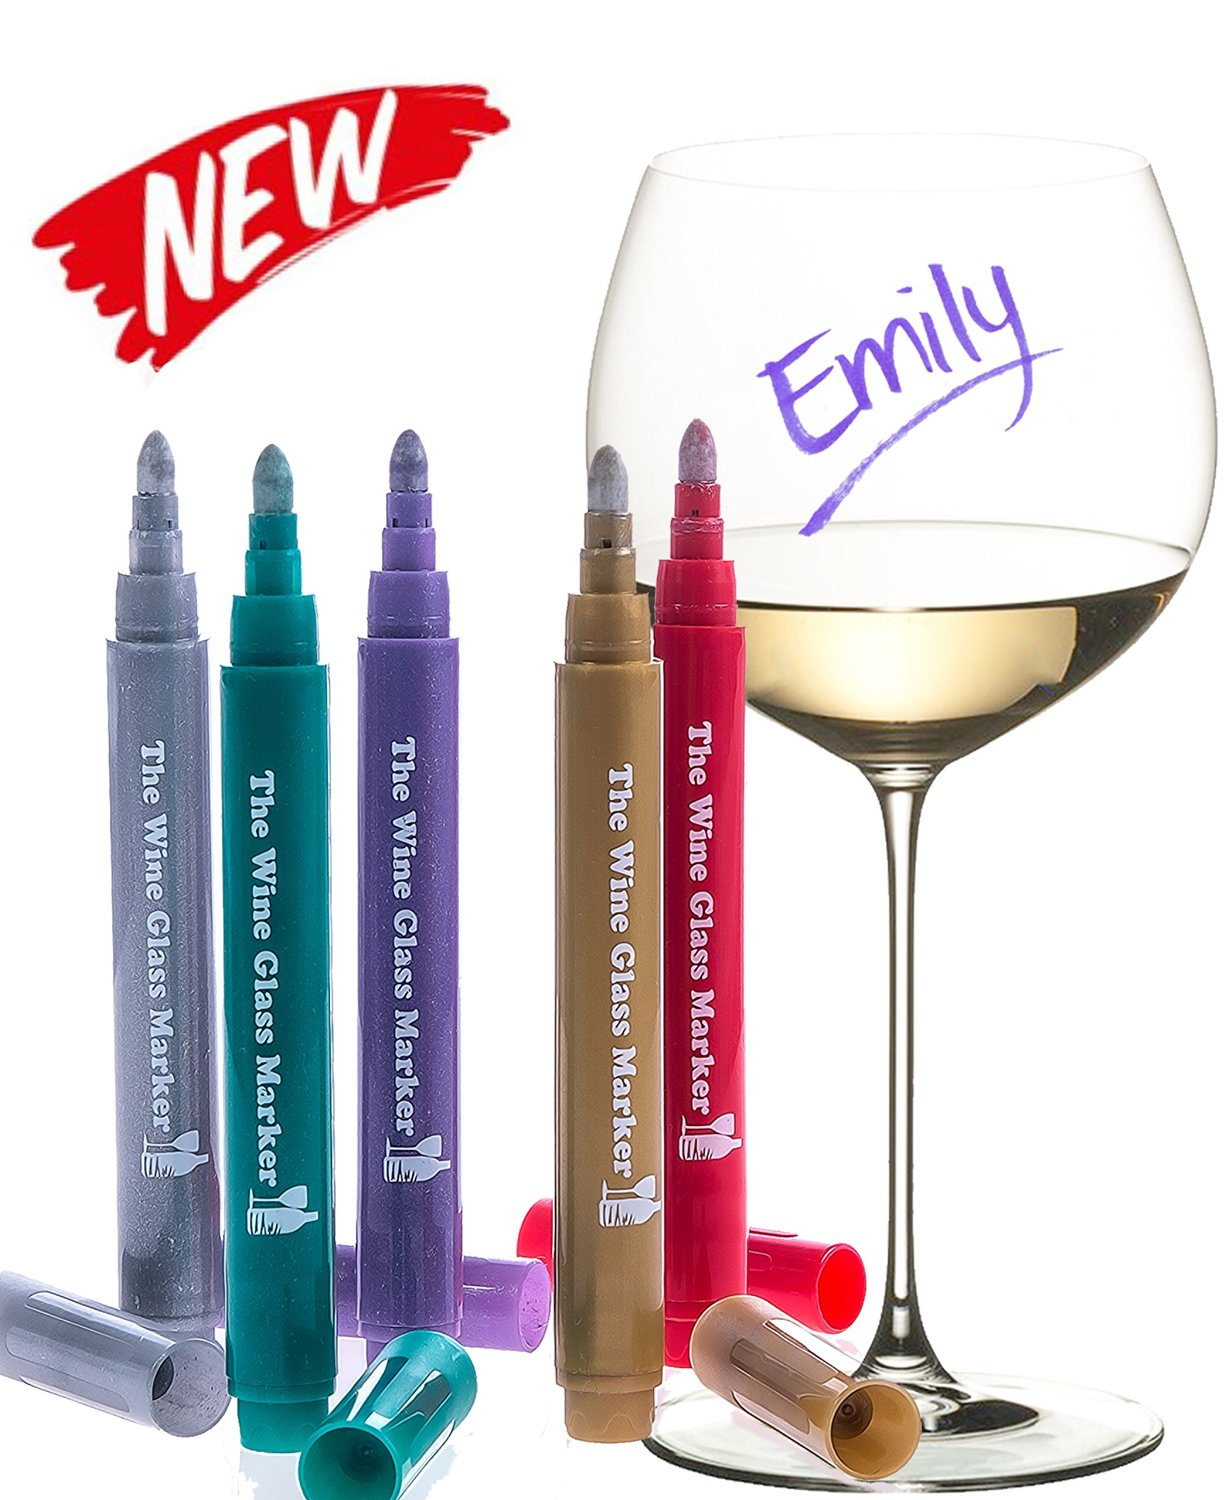 the original wine glass markers